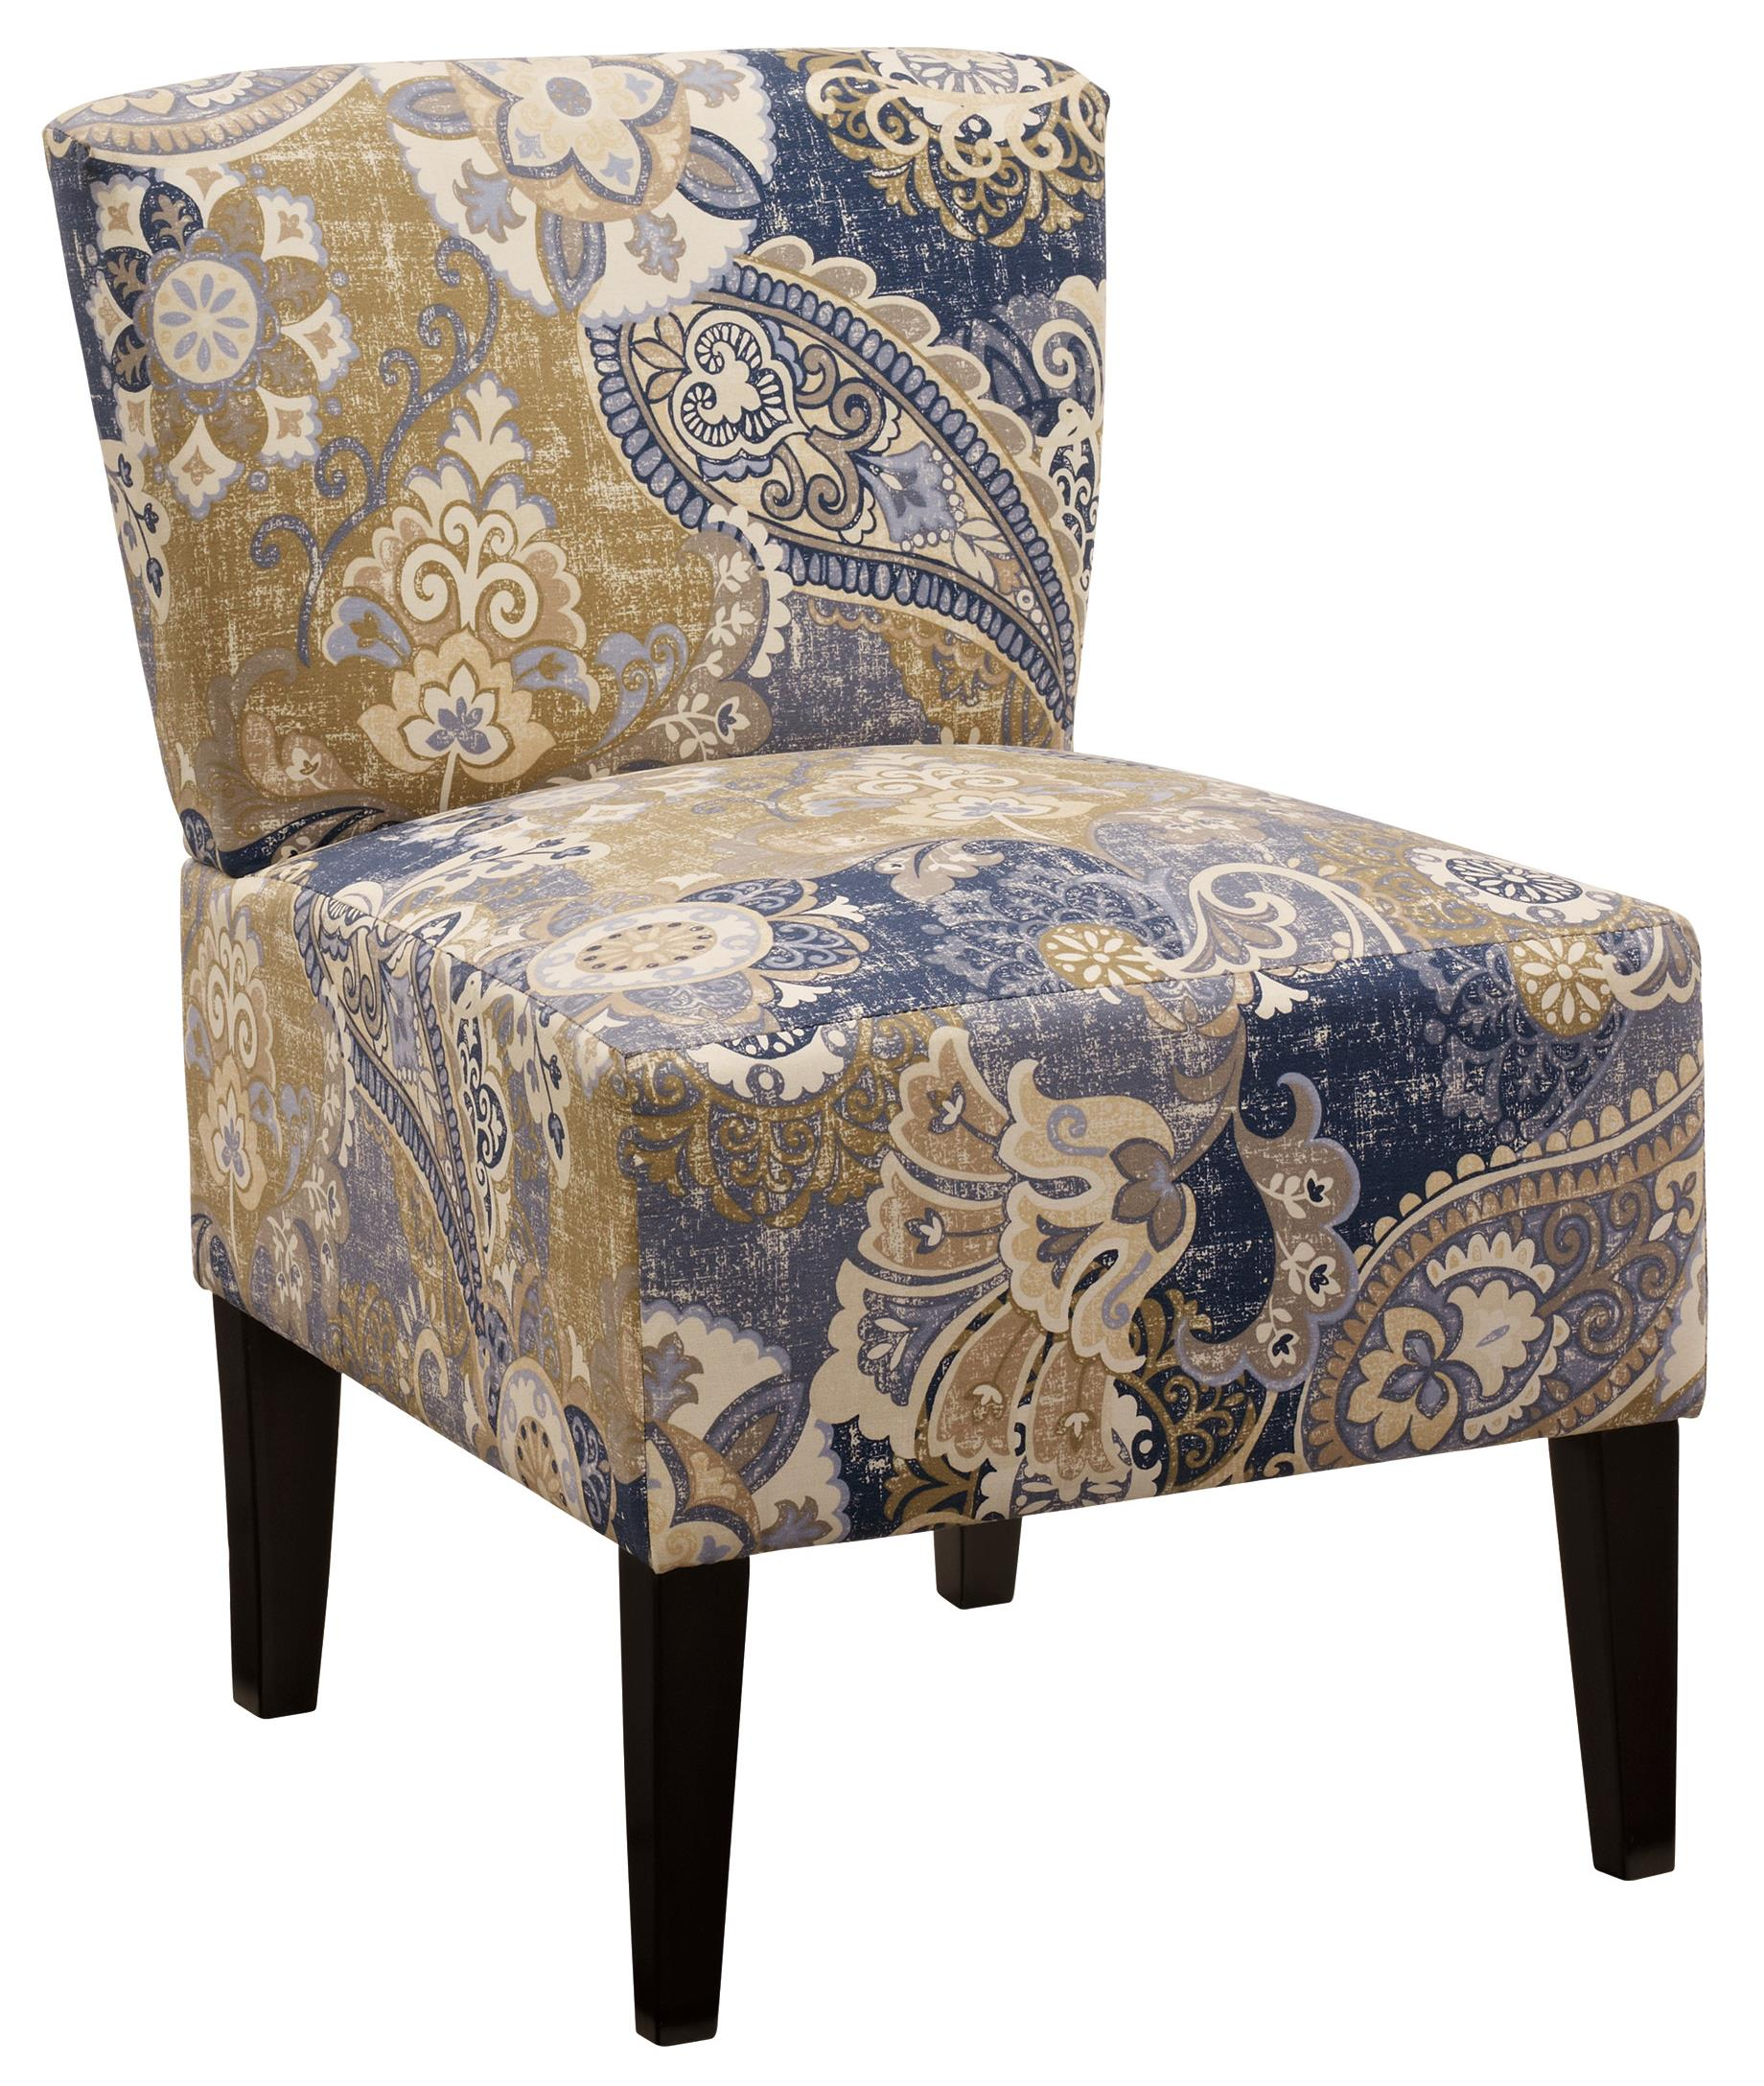 Signature Design by Ashley Ravity Accent Chair - Item Number: 4630460